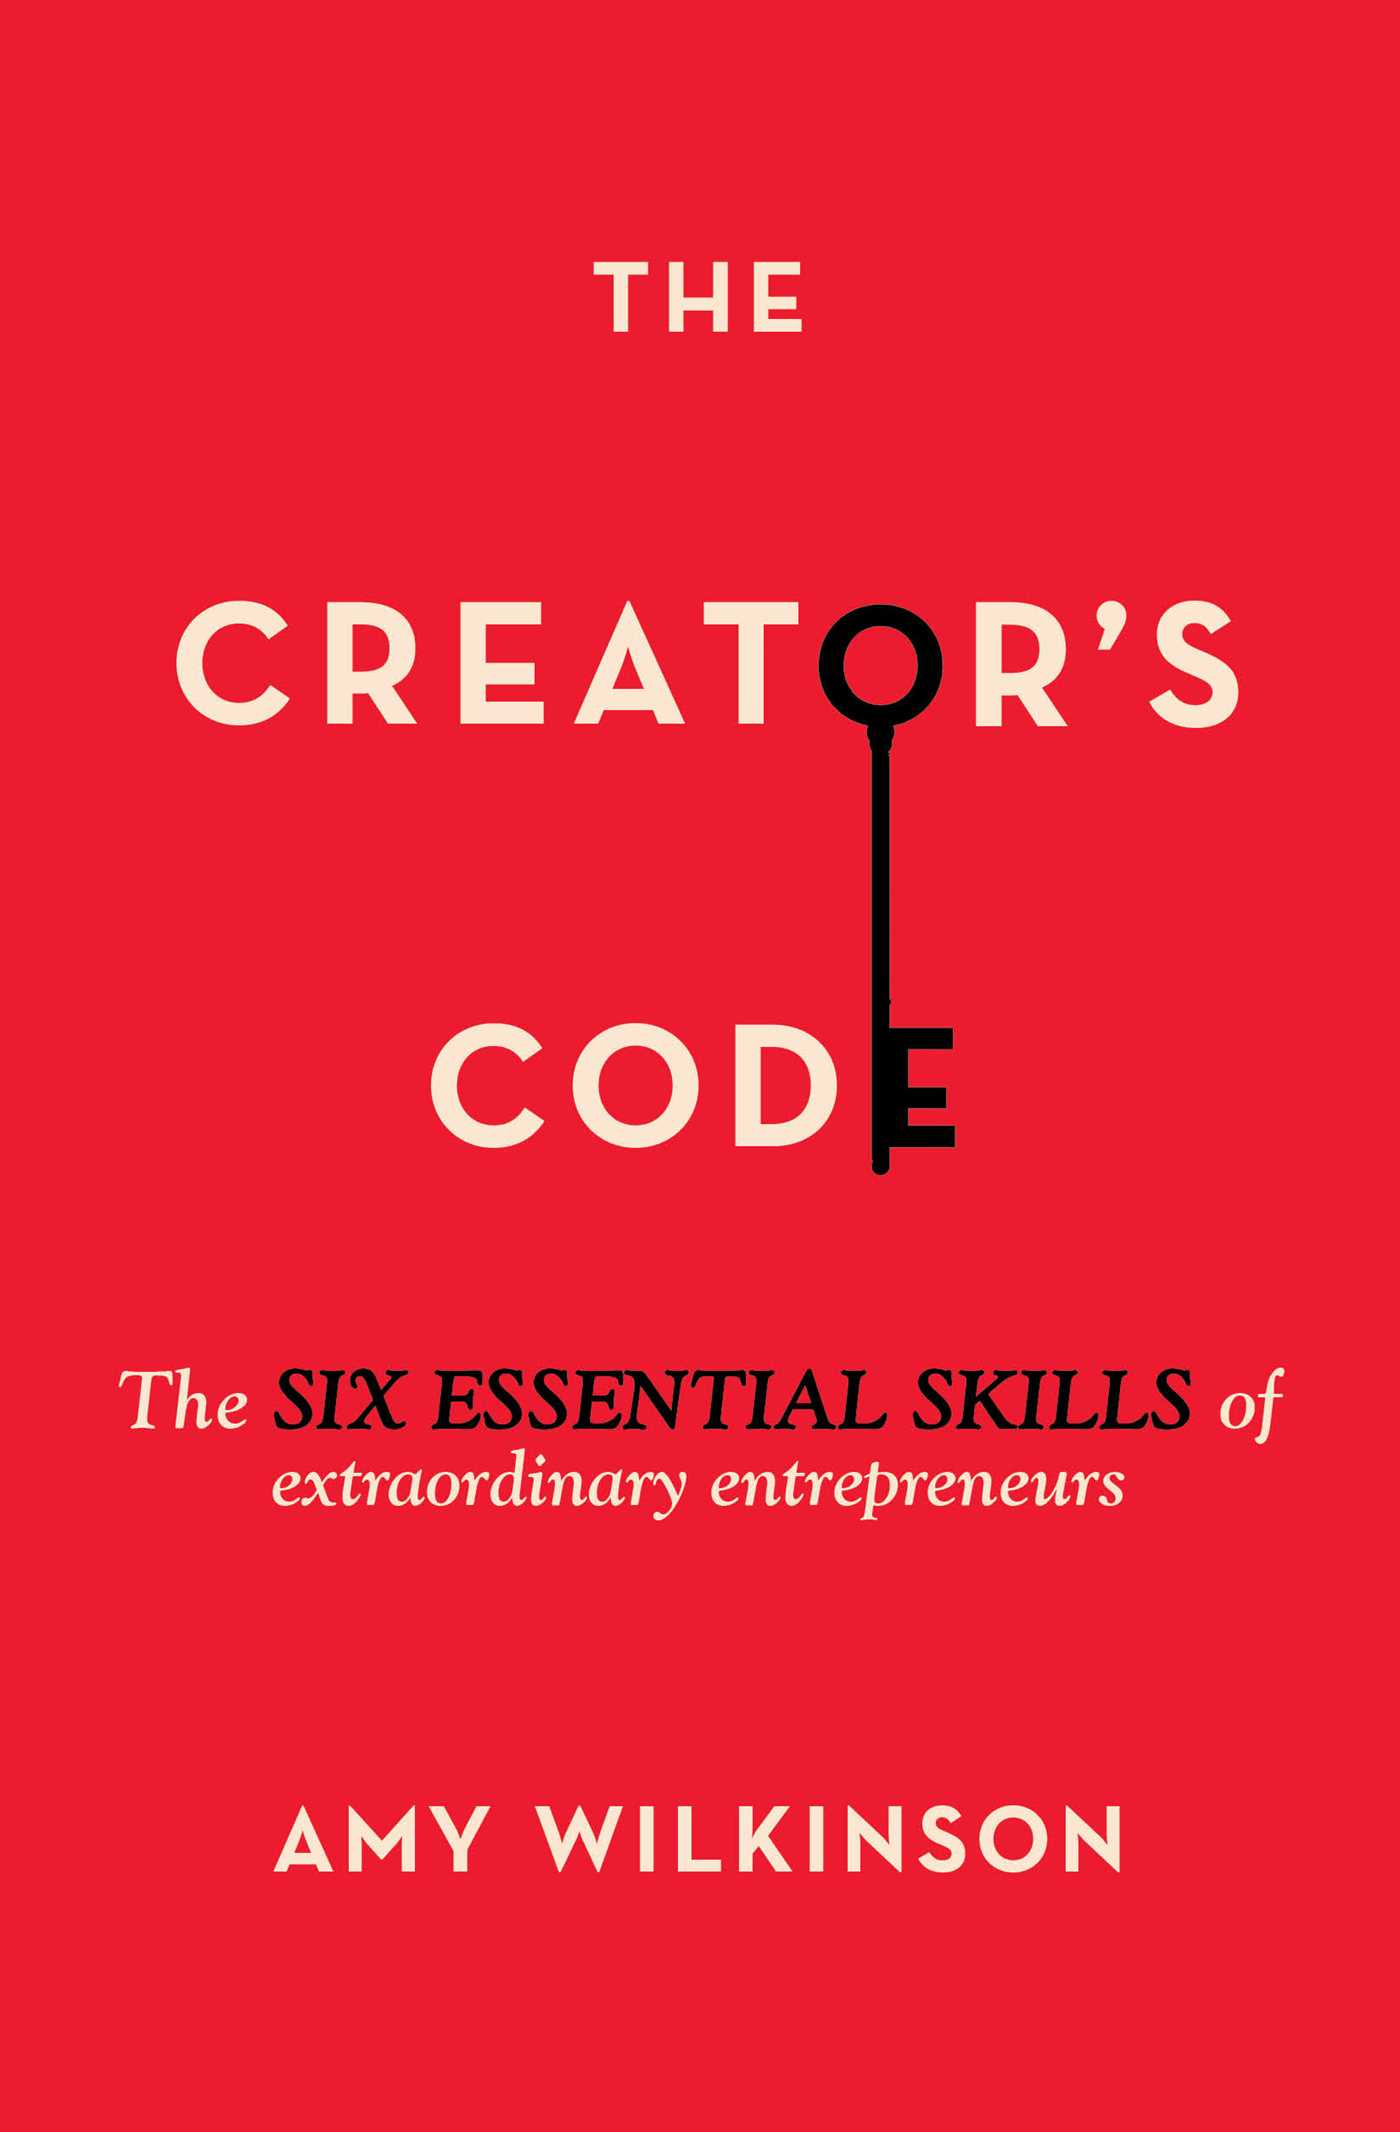 The creators code book by amy wilkinson official publisher page the creators code book by amy wilkinson official publisher page simon schuster fandeluxe Images